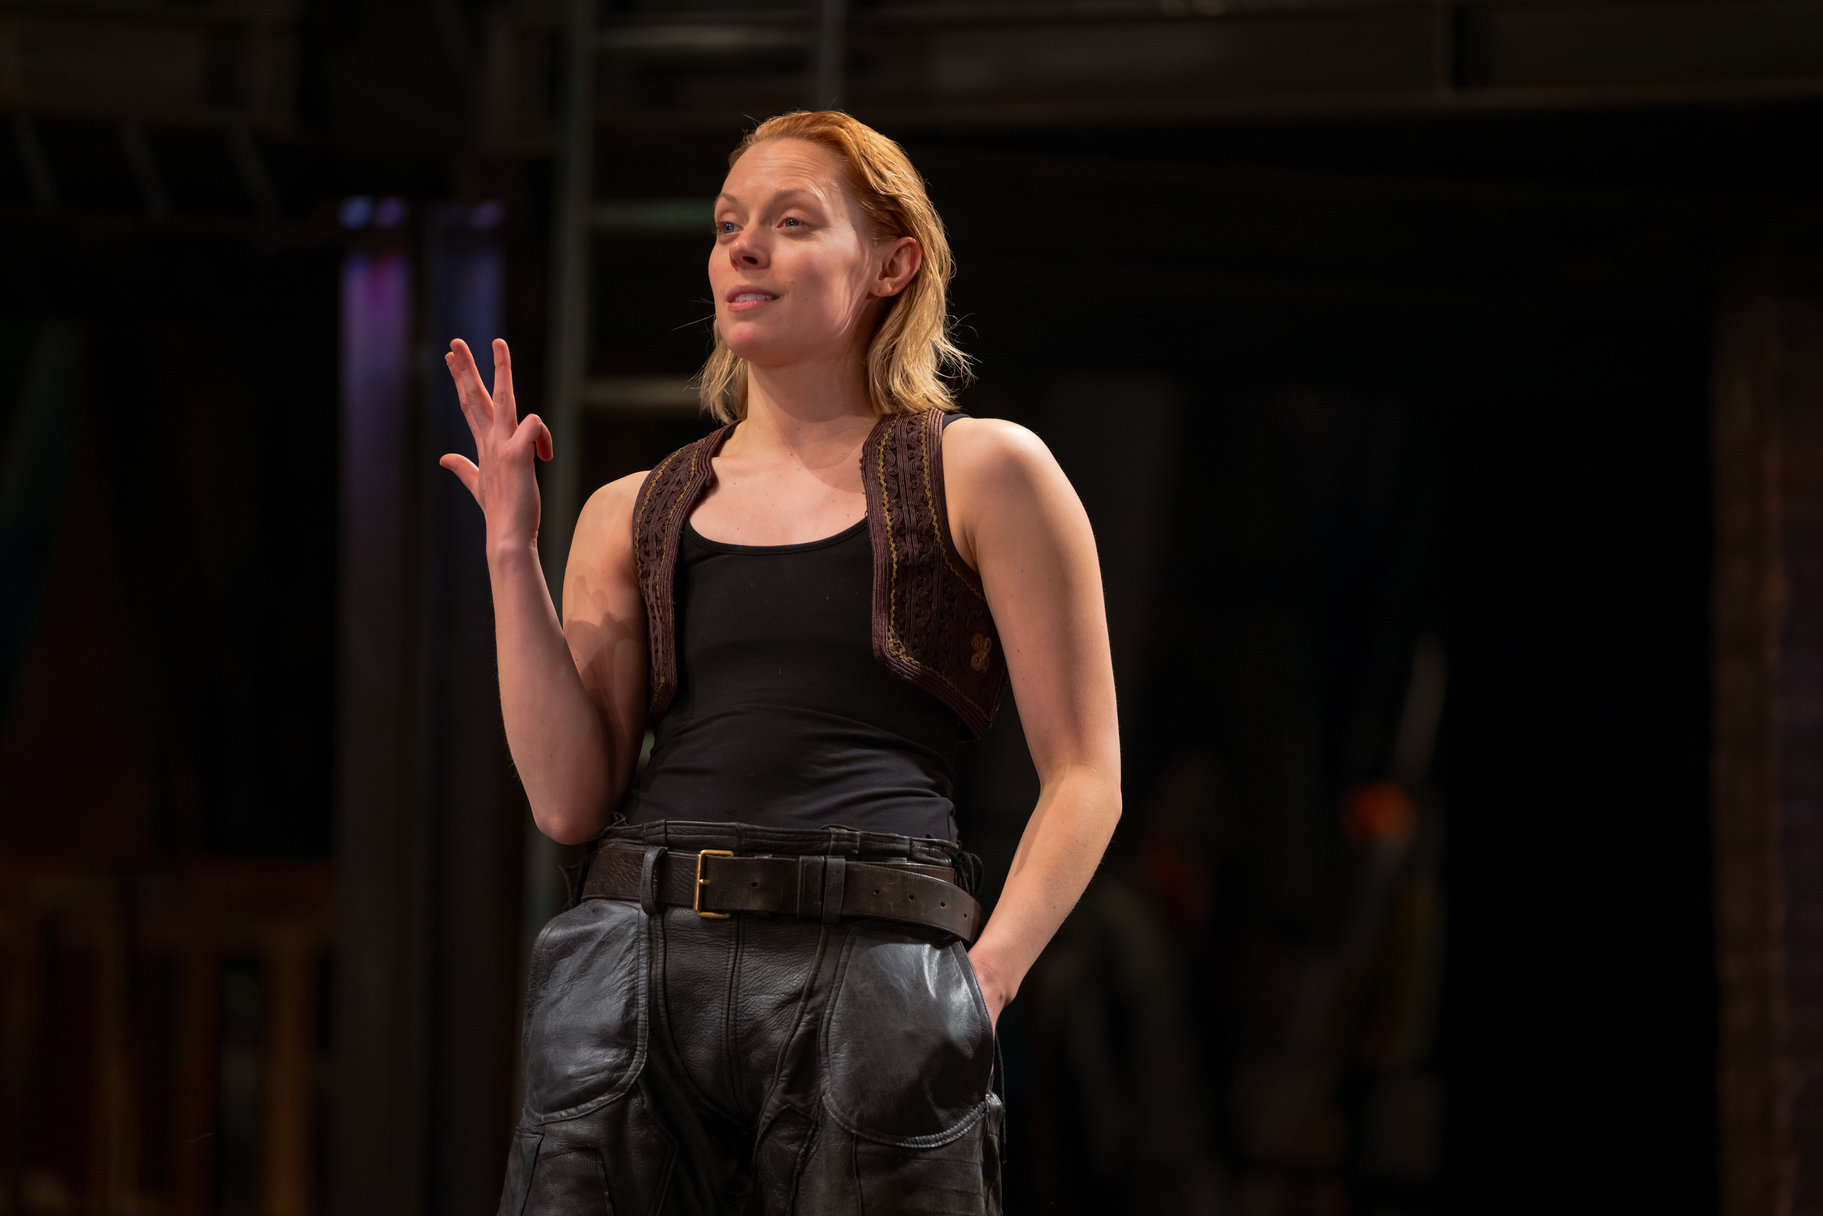 Rosalind as Ganymede, wearing dark clothes and leather trousers.